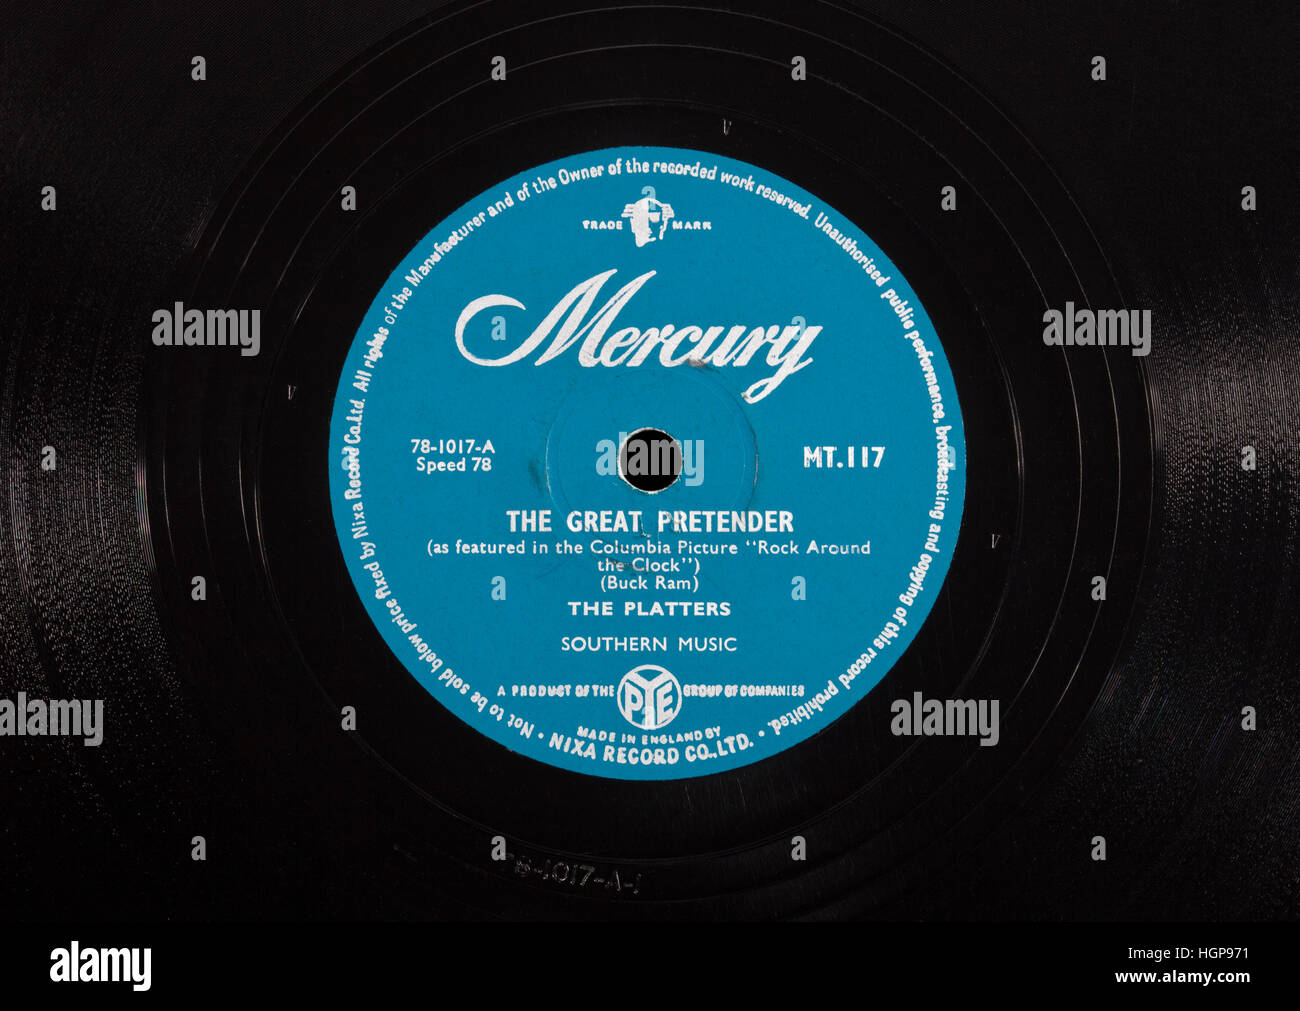 An old 78rpm vinyl record 'The Great Pretender' by The Platters - Stock Image